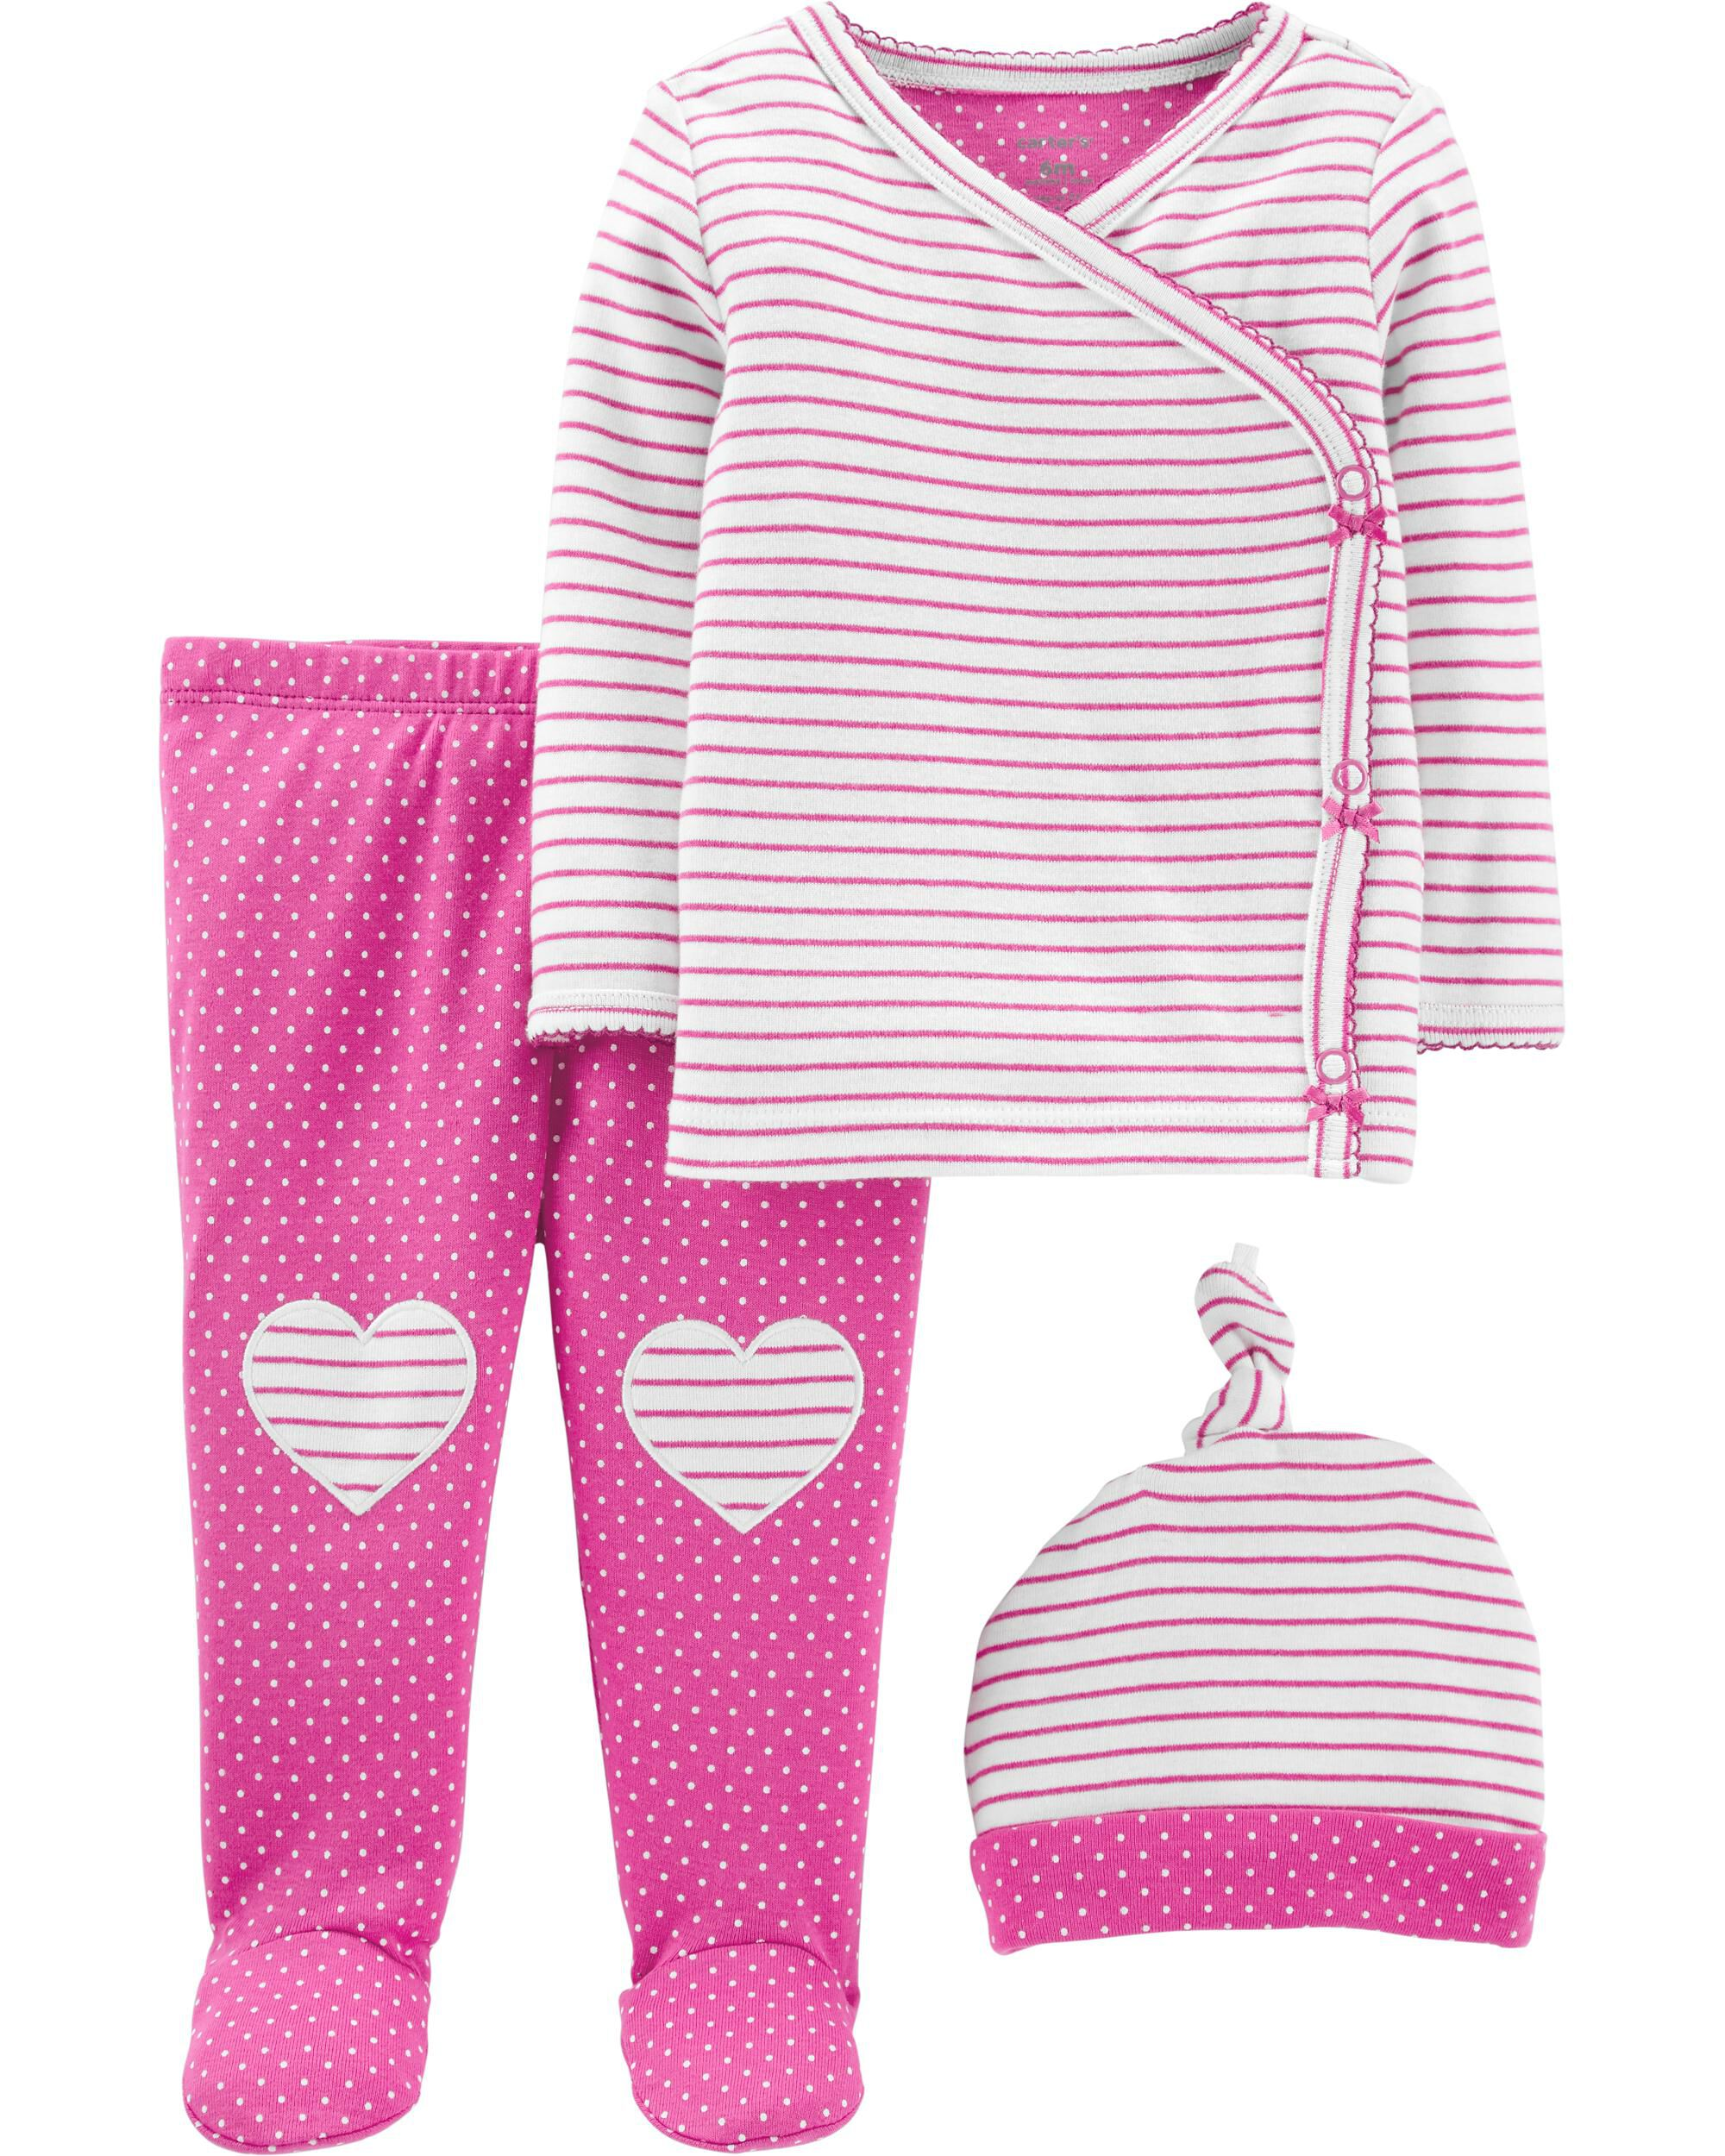 Asisol Baby Boys Girls Floral Outfits Set Long Sleeve Hoodie Striped Pants